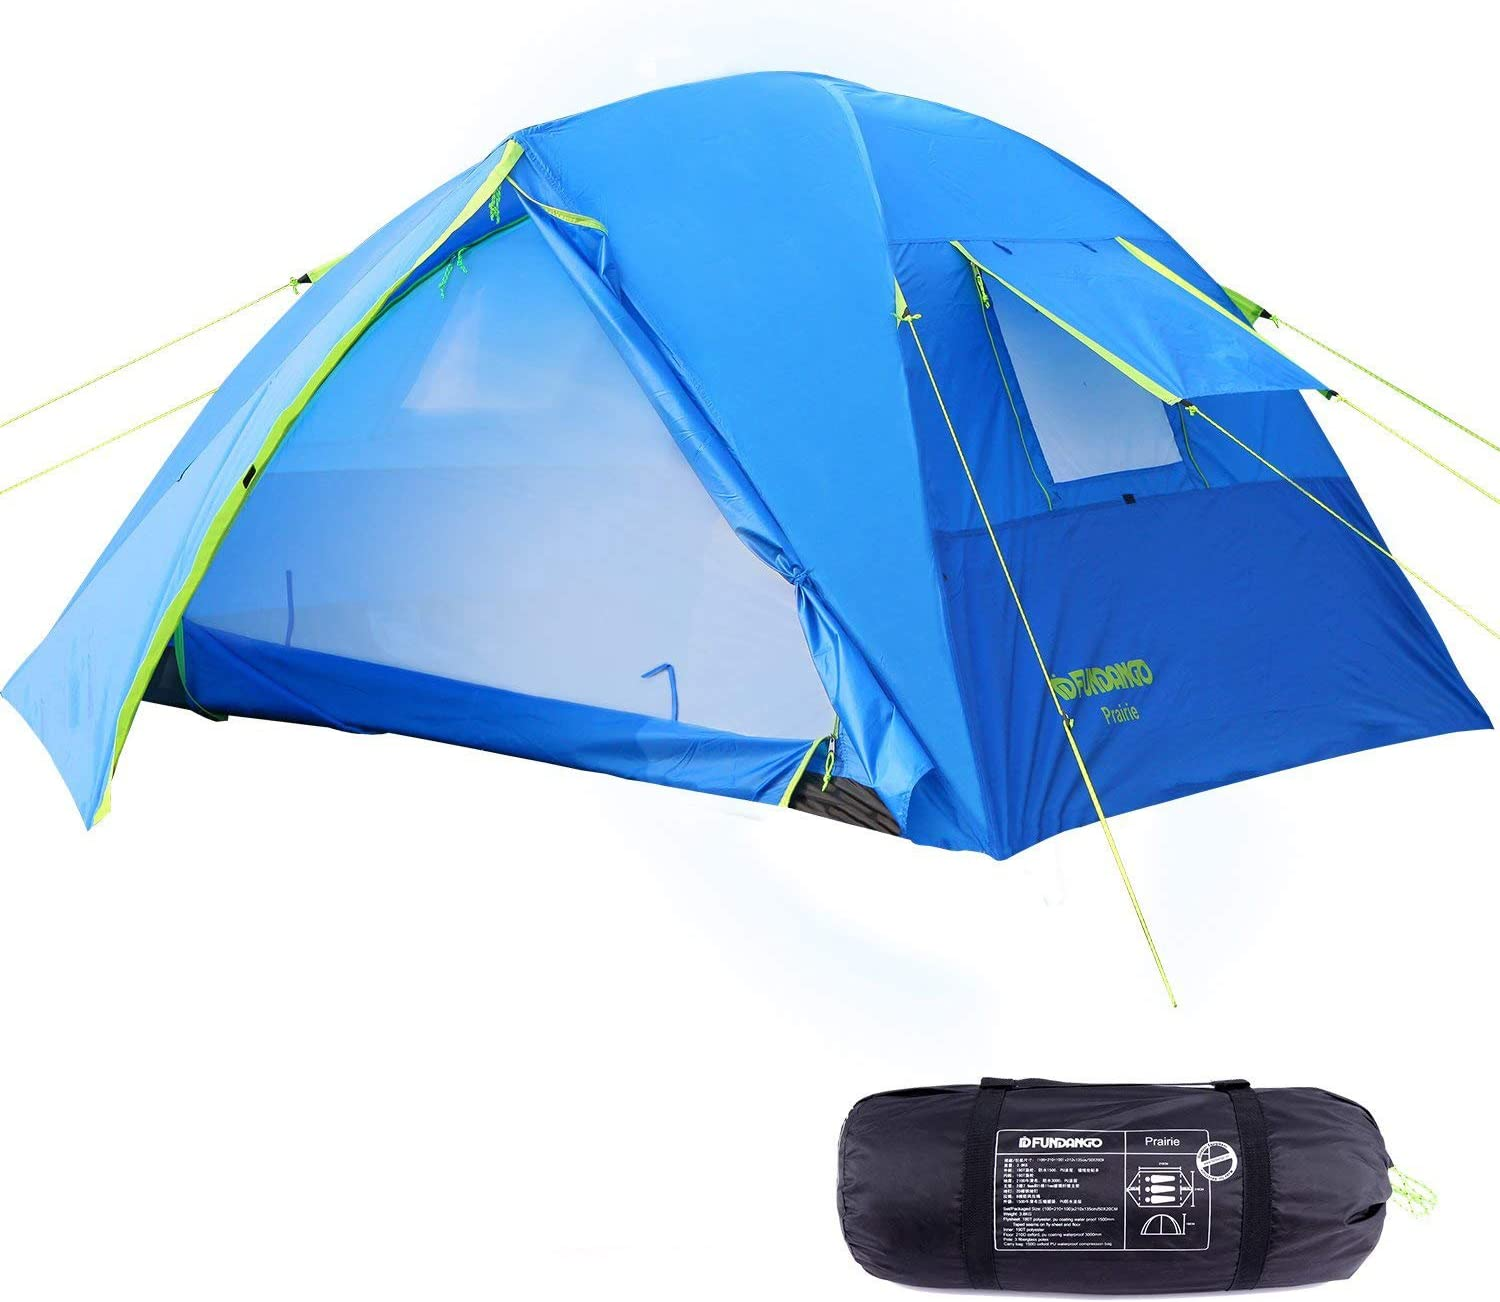 FUNDANGO 3-4 Person Camping Tent, Lightweight Waterproof Family Dome Tent for Outdoor, Backpacking, Hiking, Double Layers, 2 Doors, 2 Vestibules, 2 Side Windows, Super Ventilation, Easy to Setup, Blue